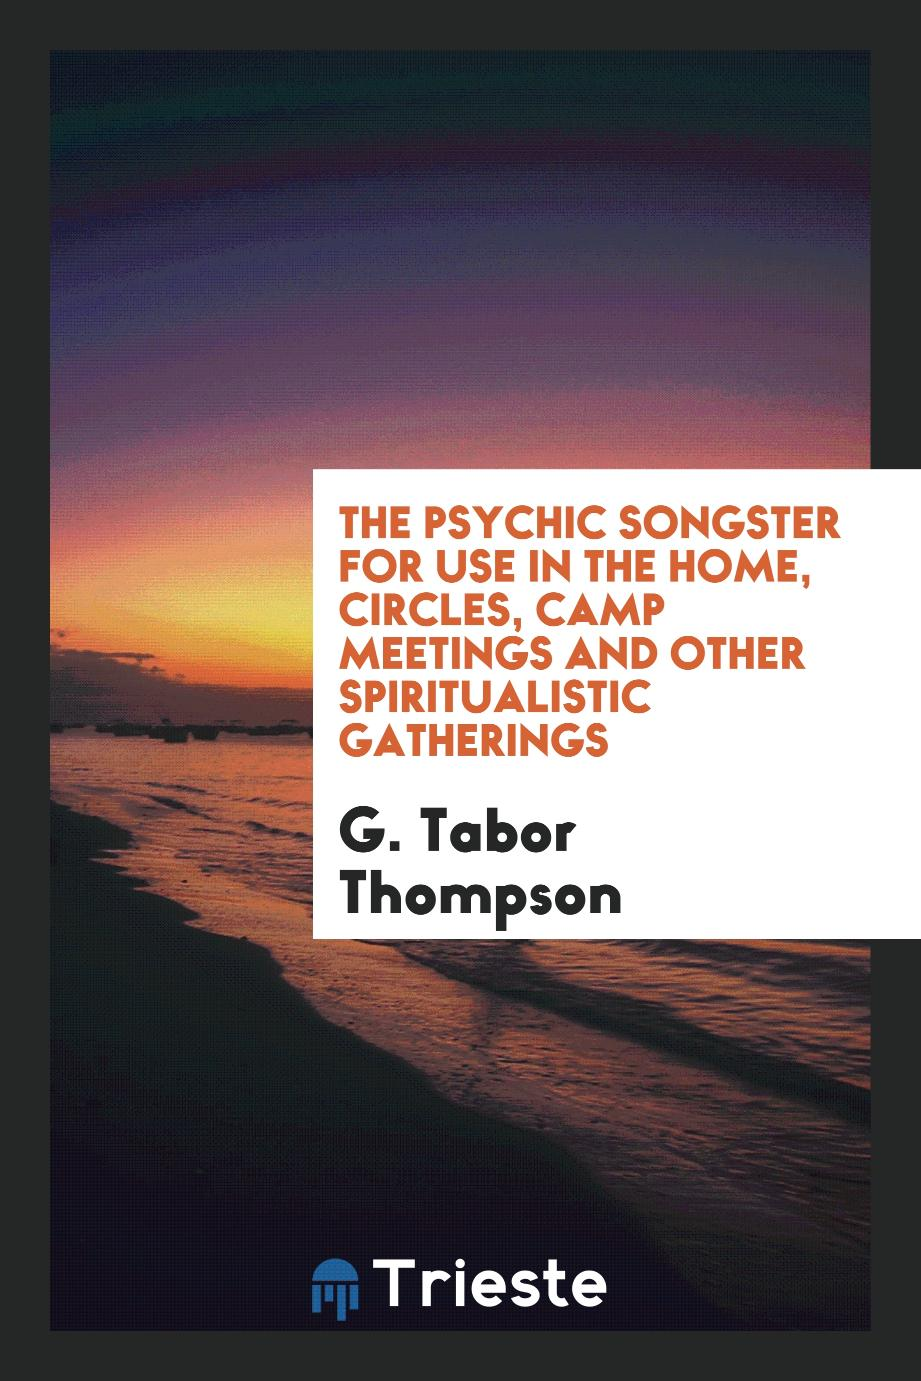 The Psychic Songster for Use in the Home, Circles, Camp Meetings and Other Spiritualistic Gatherings